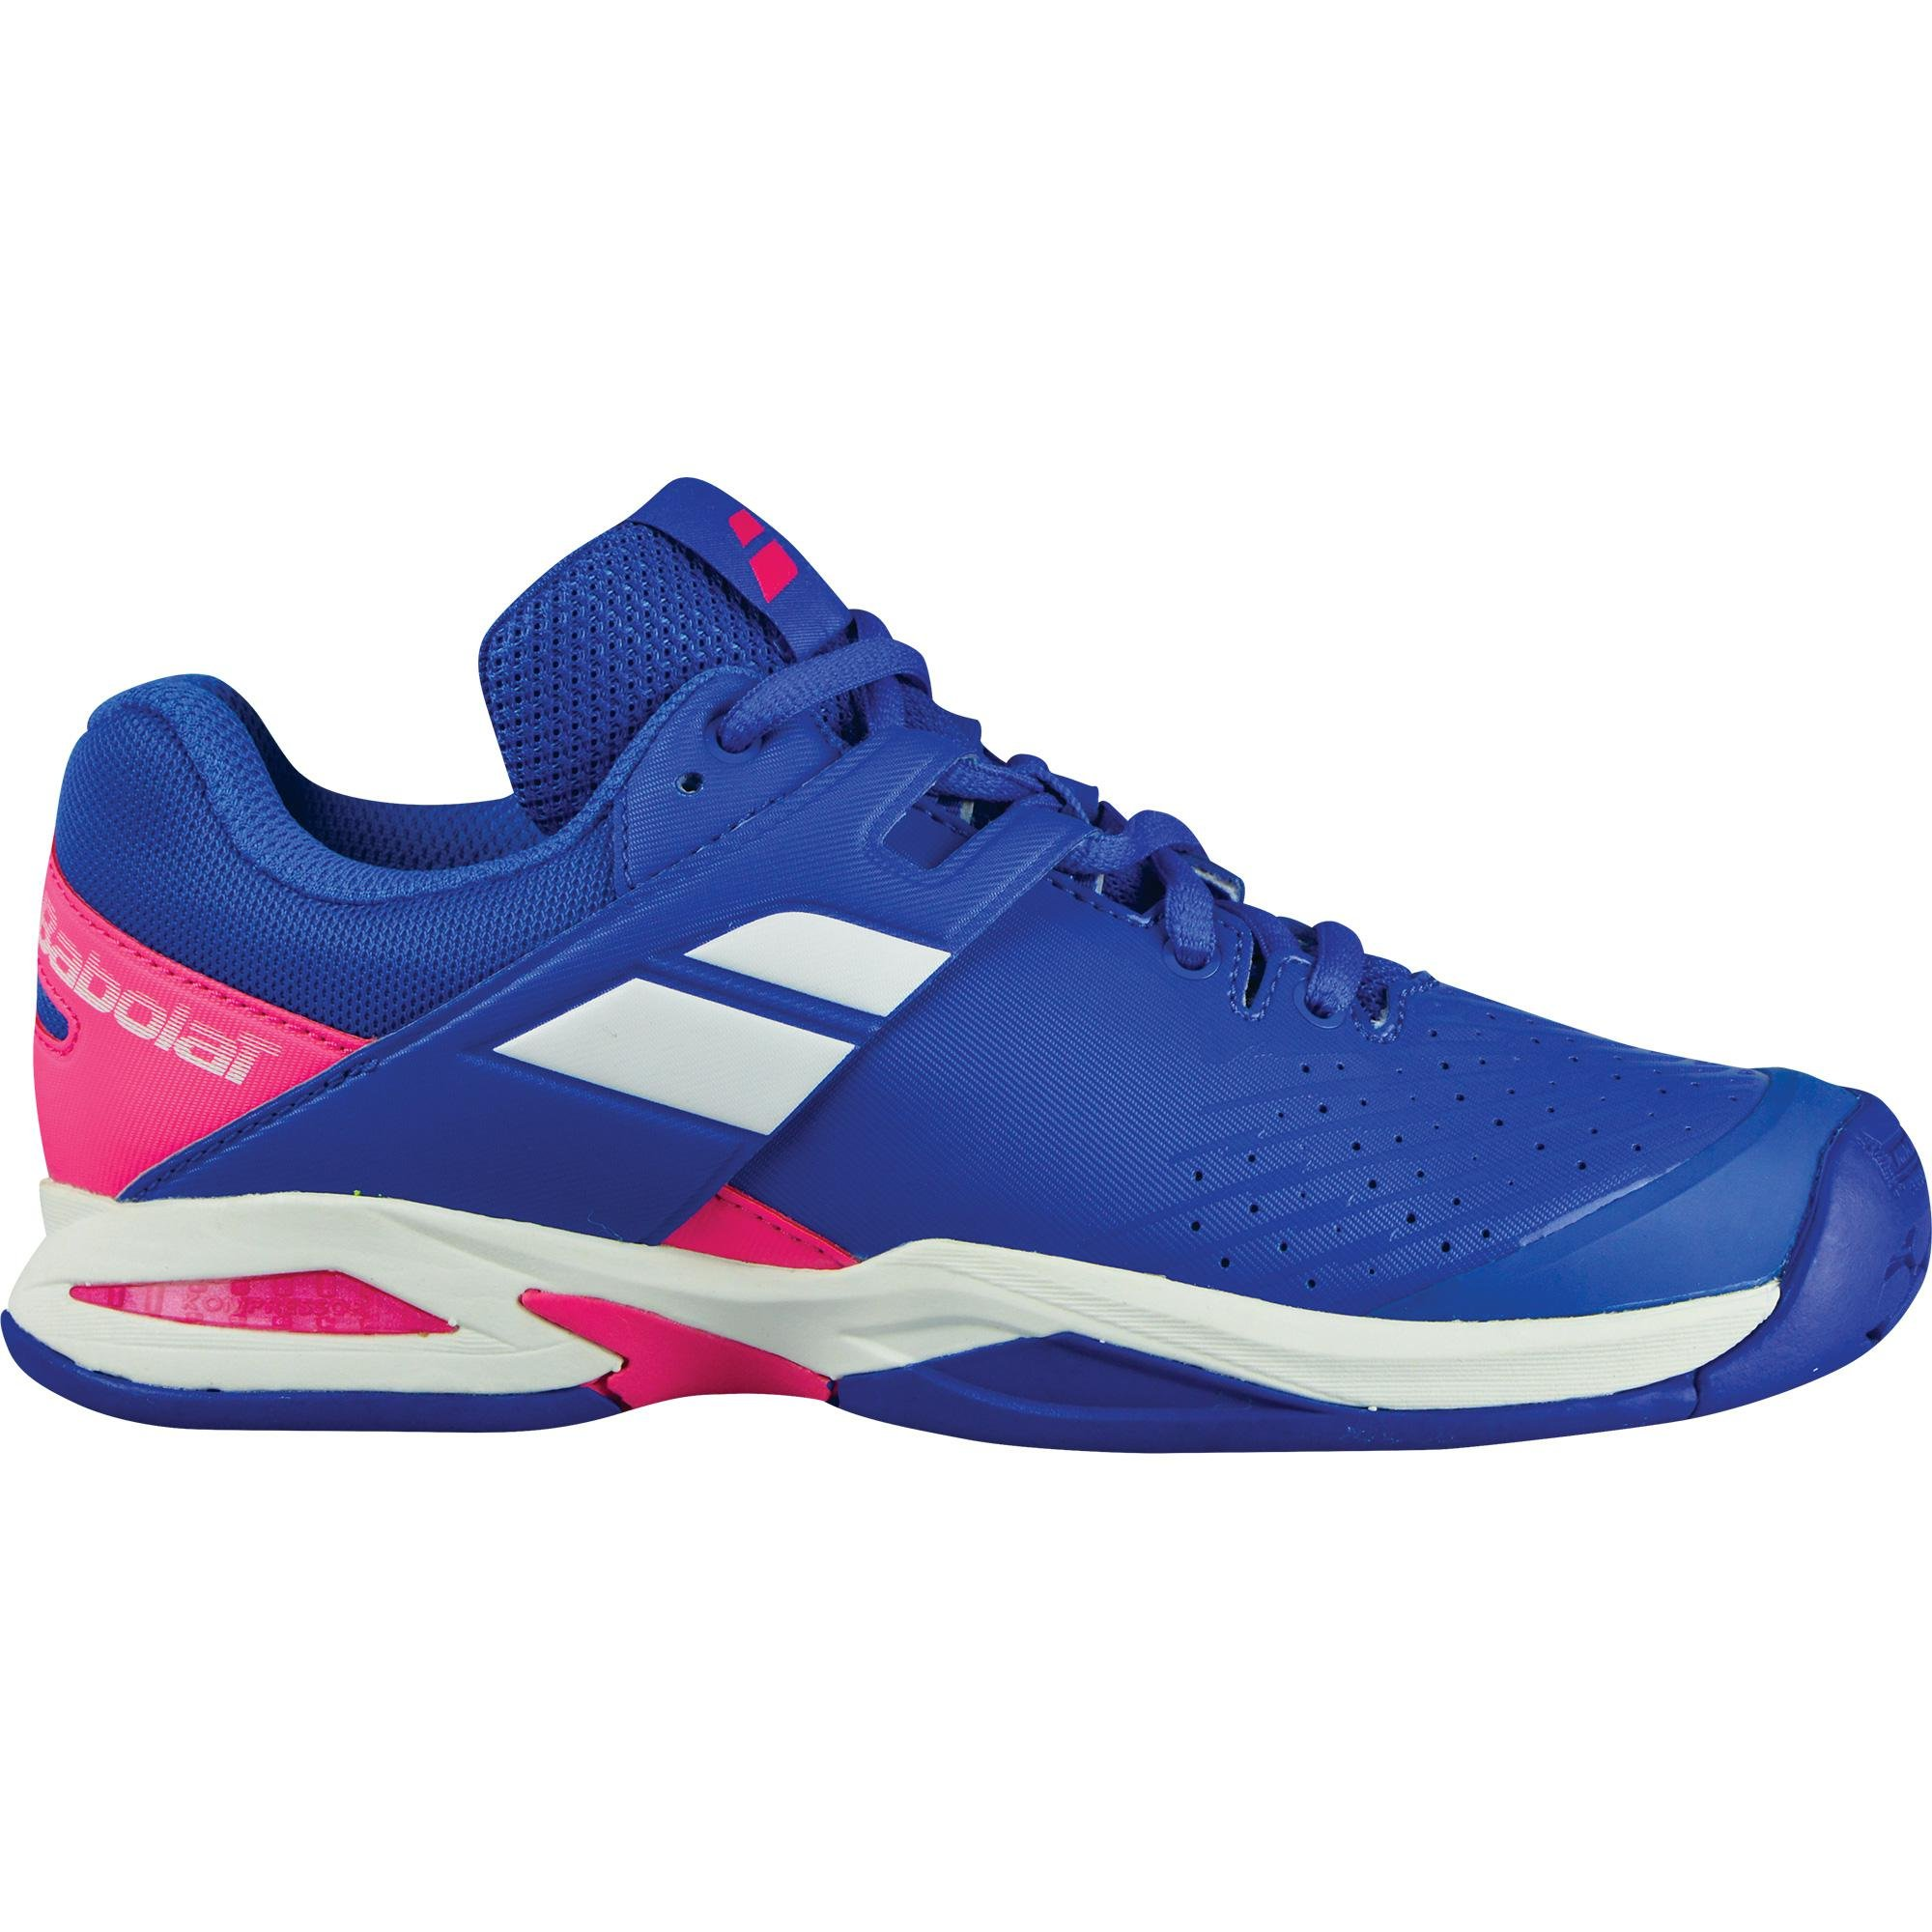 Babolat Kid's Propulse Fury All Court Junior Tennis Shoes, Princess Blue/Fandango Pink (2.5 US Little Kid)